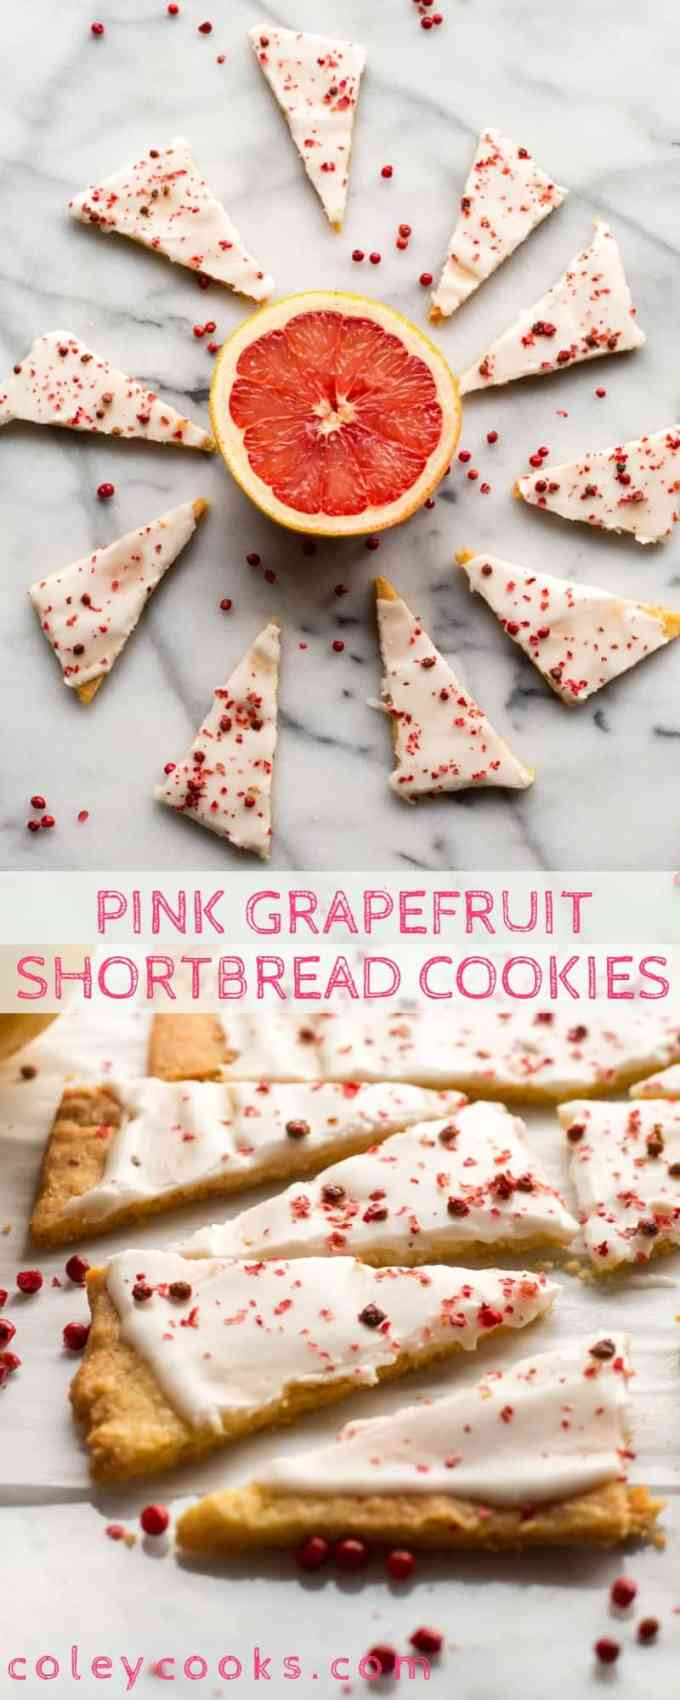 These Pink Grapefruit Shortbread Cookies are buttery, tangy, zesty, lightly sweetened and super easy to make! #easy #grapefruit #shortbread #recipe #citrus #cookies #dessert | Coleycooks.com